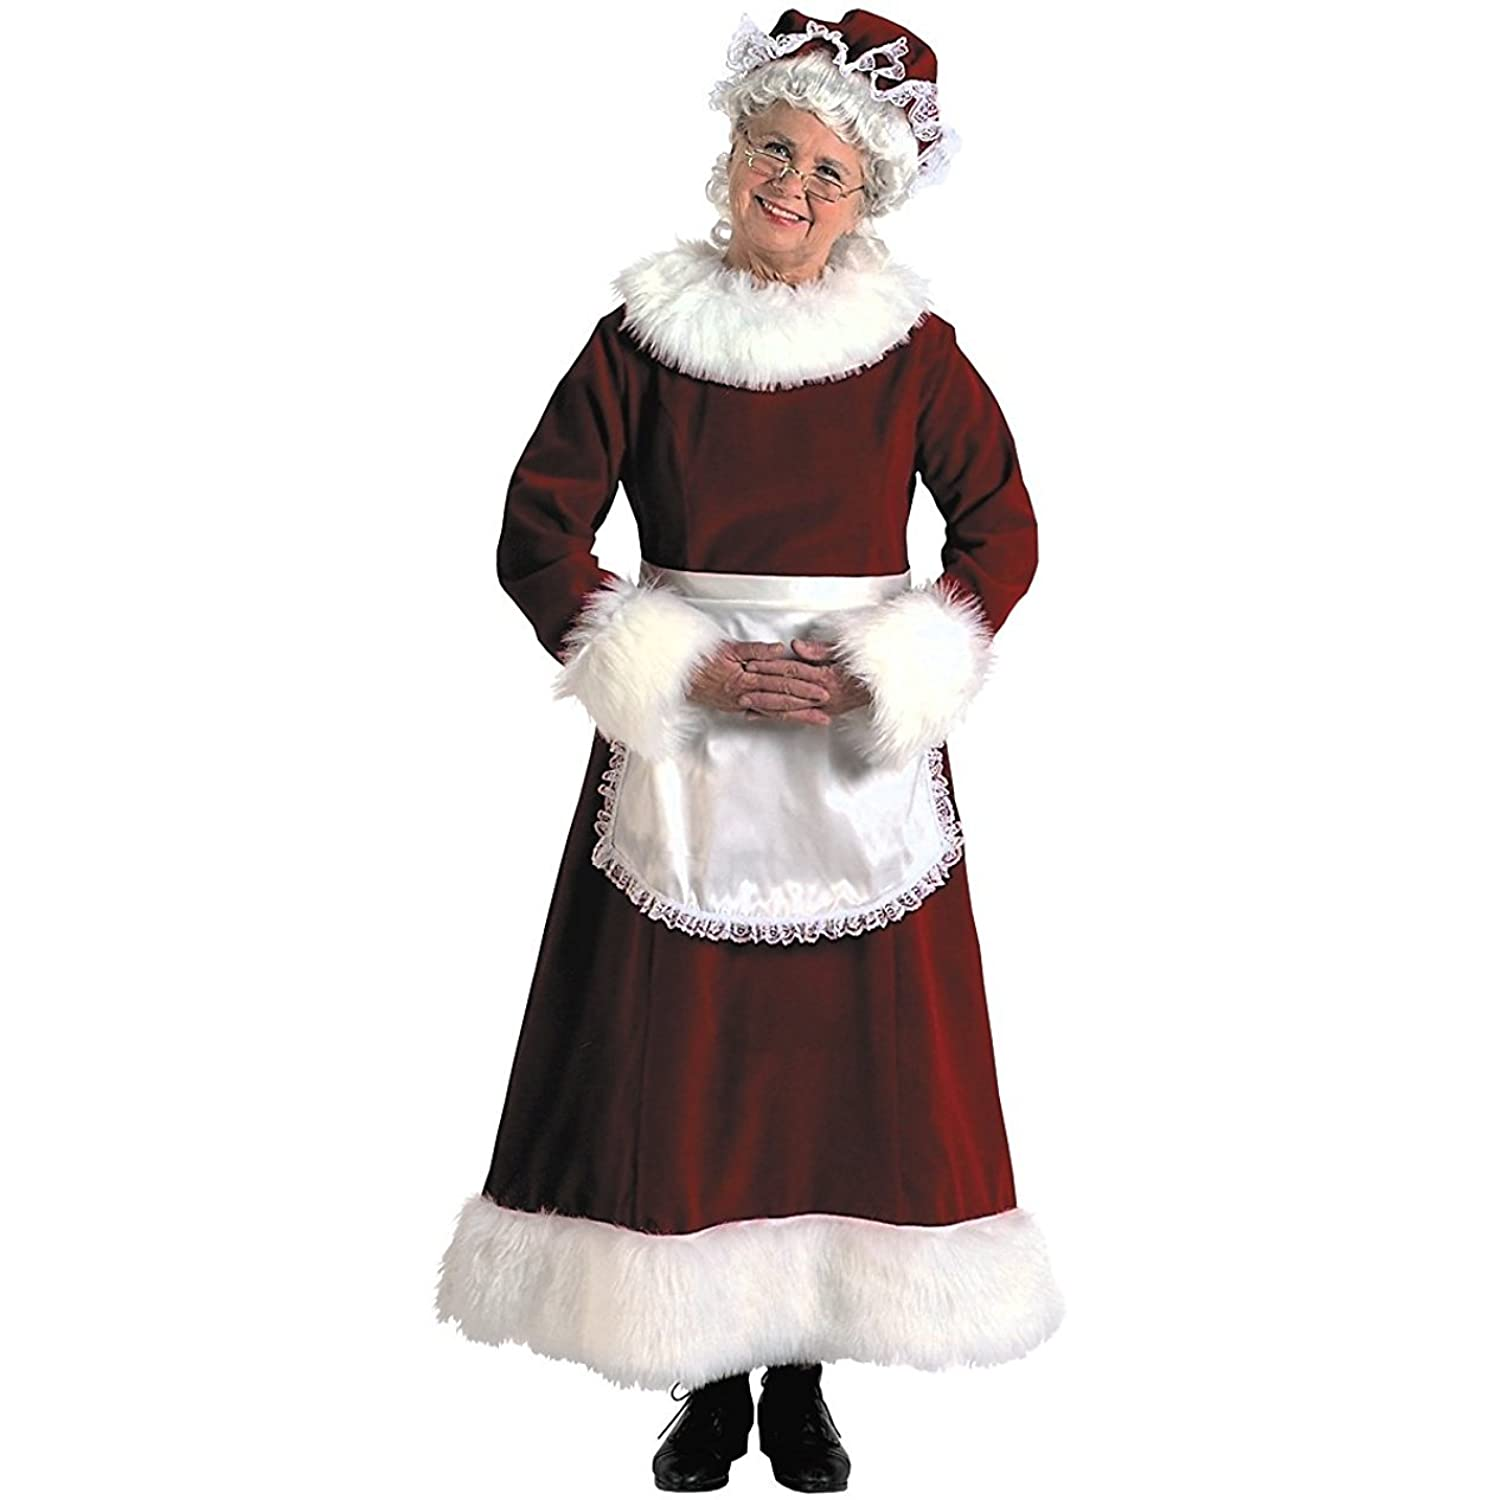 Adult Mrs. Santa Claus Red Velvet Costume Dress Set Plus Size - DeluxeAdultCostumes.com